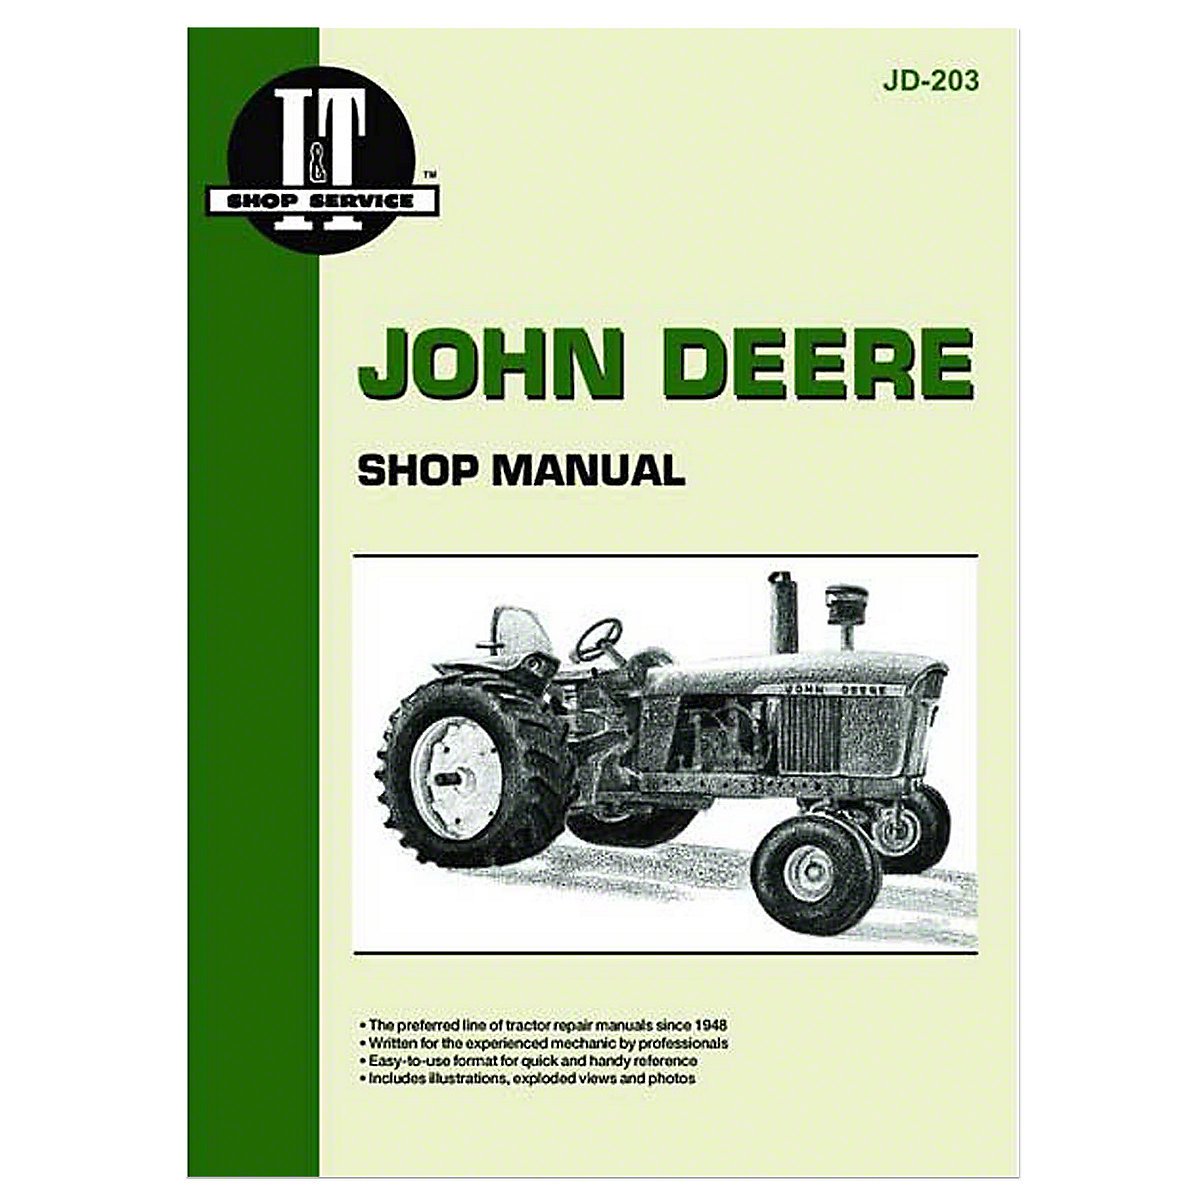 jd203 john deere i t shop manual col rh steinertractor com john deere 5400 manual john deere 4500 manual pdf